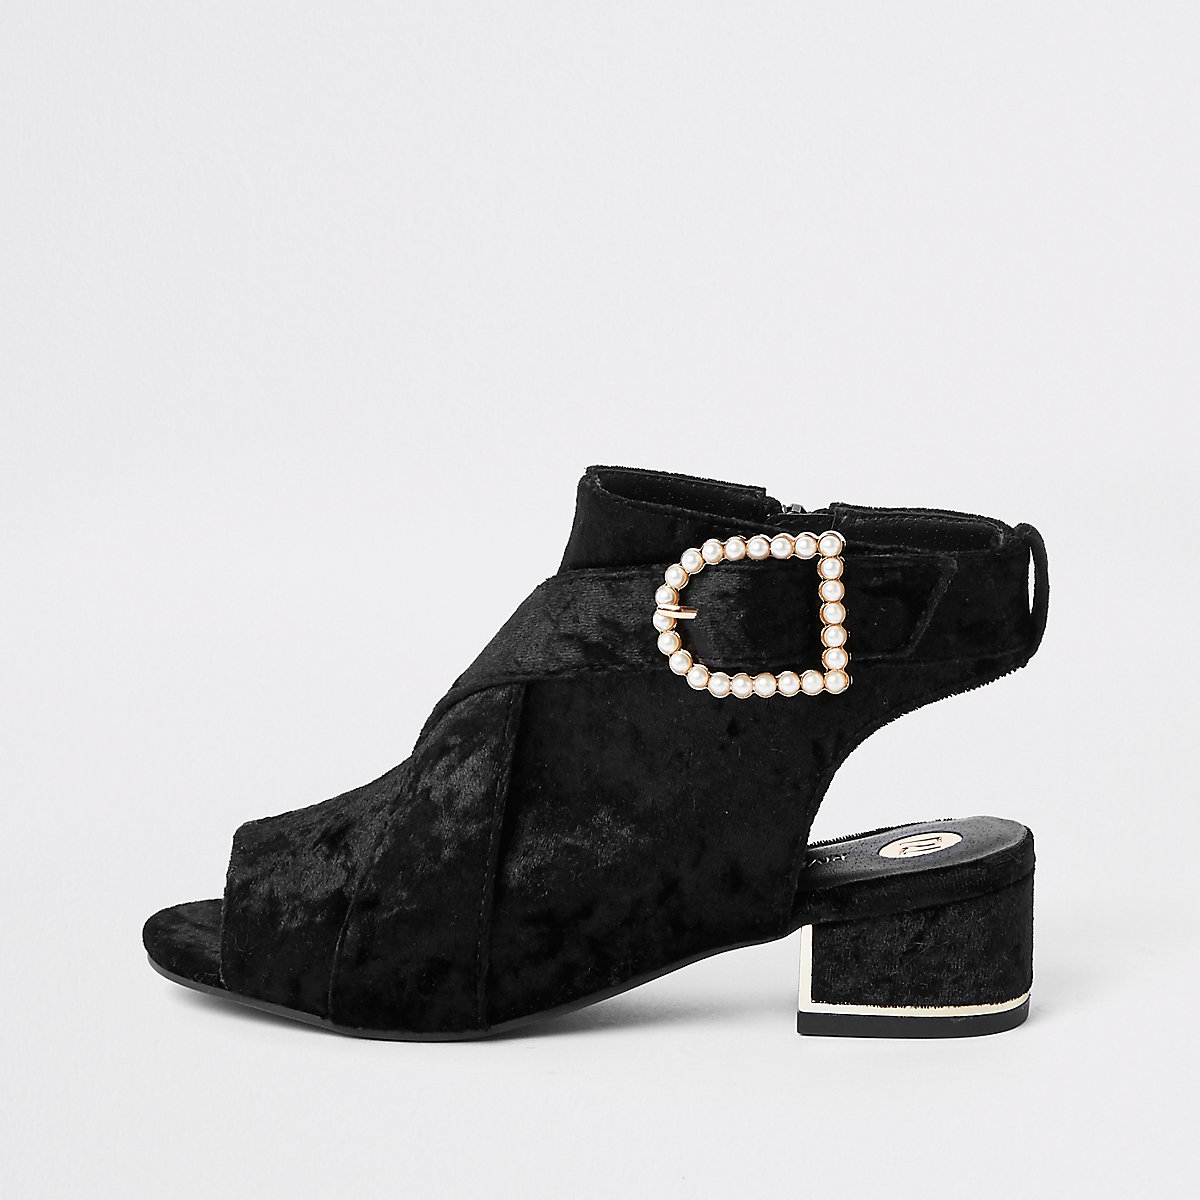 Girls black velvet pearl buckle shoe boots